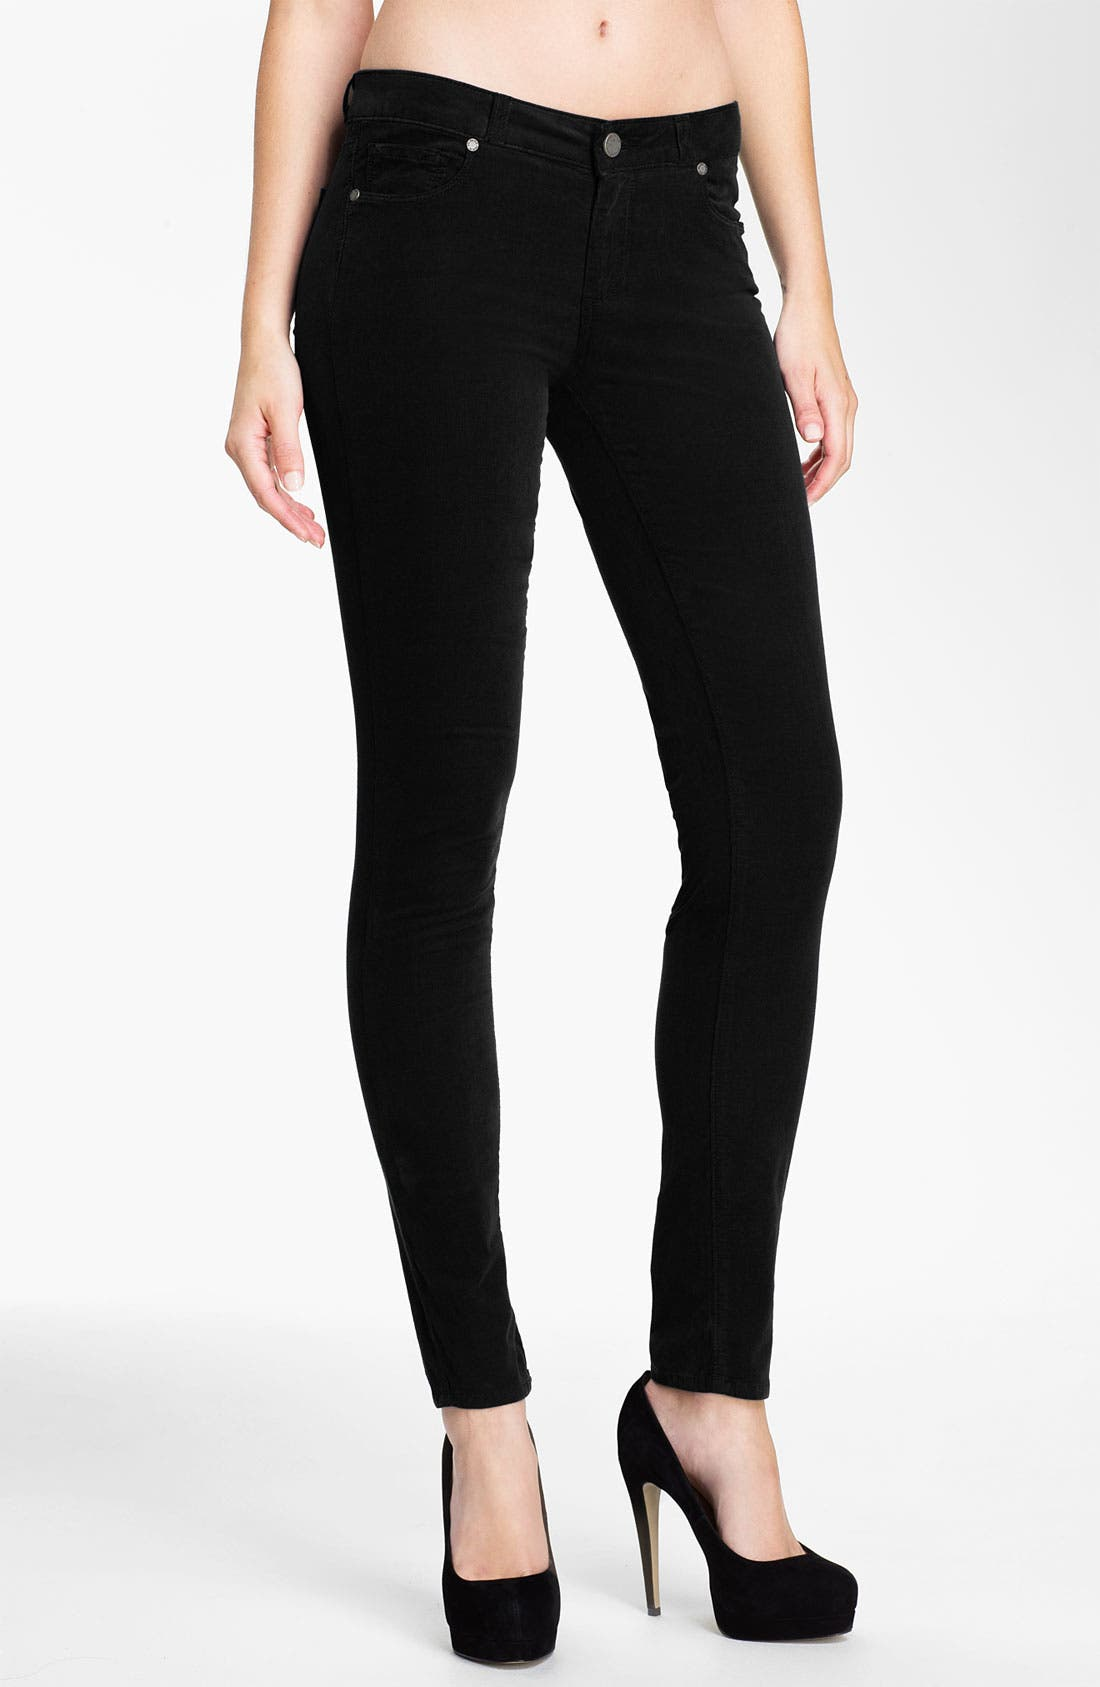 Main Image - Paige Denim 'Verdugo' Stretch Denim Skinny Jeans (Black)